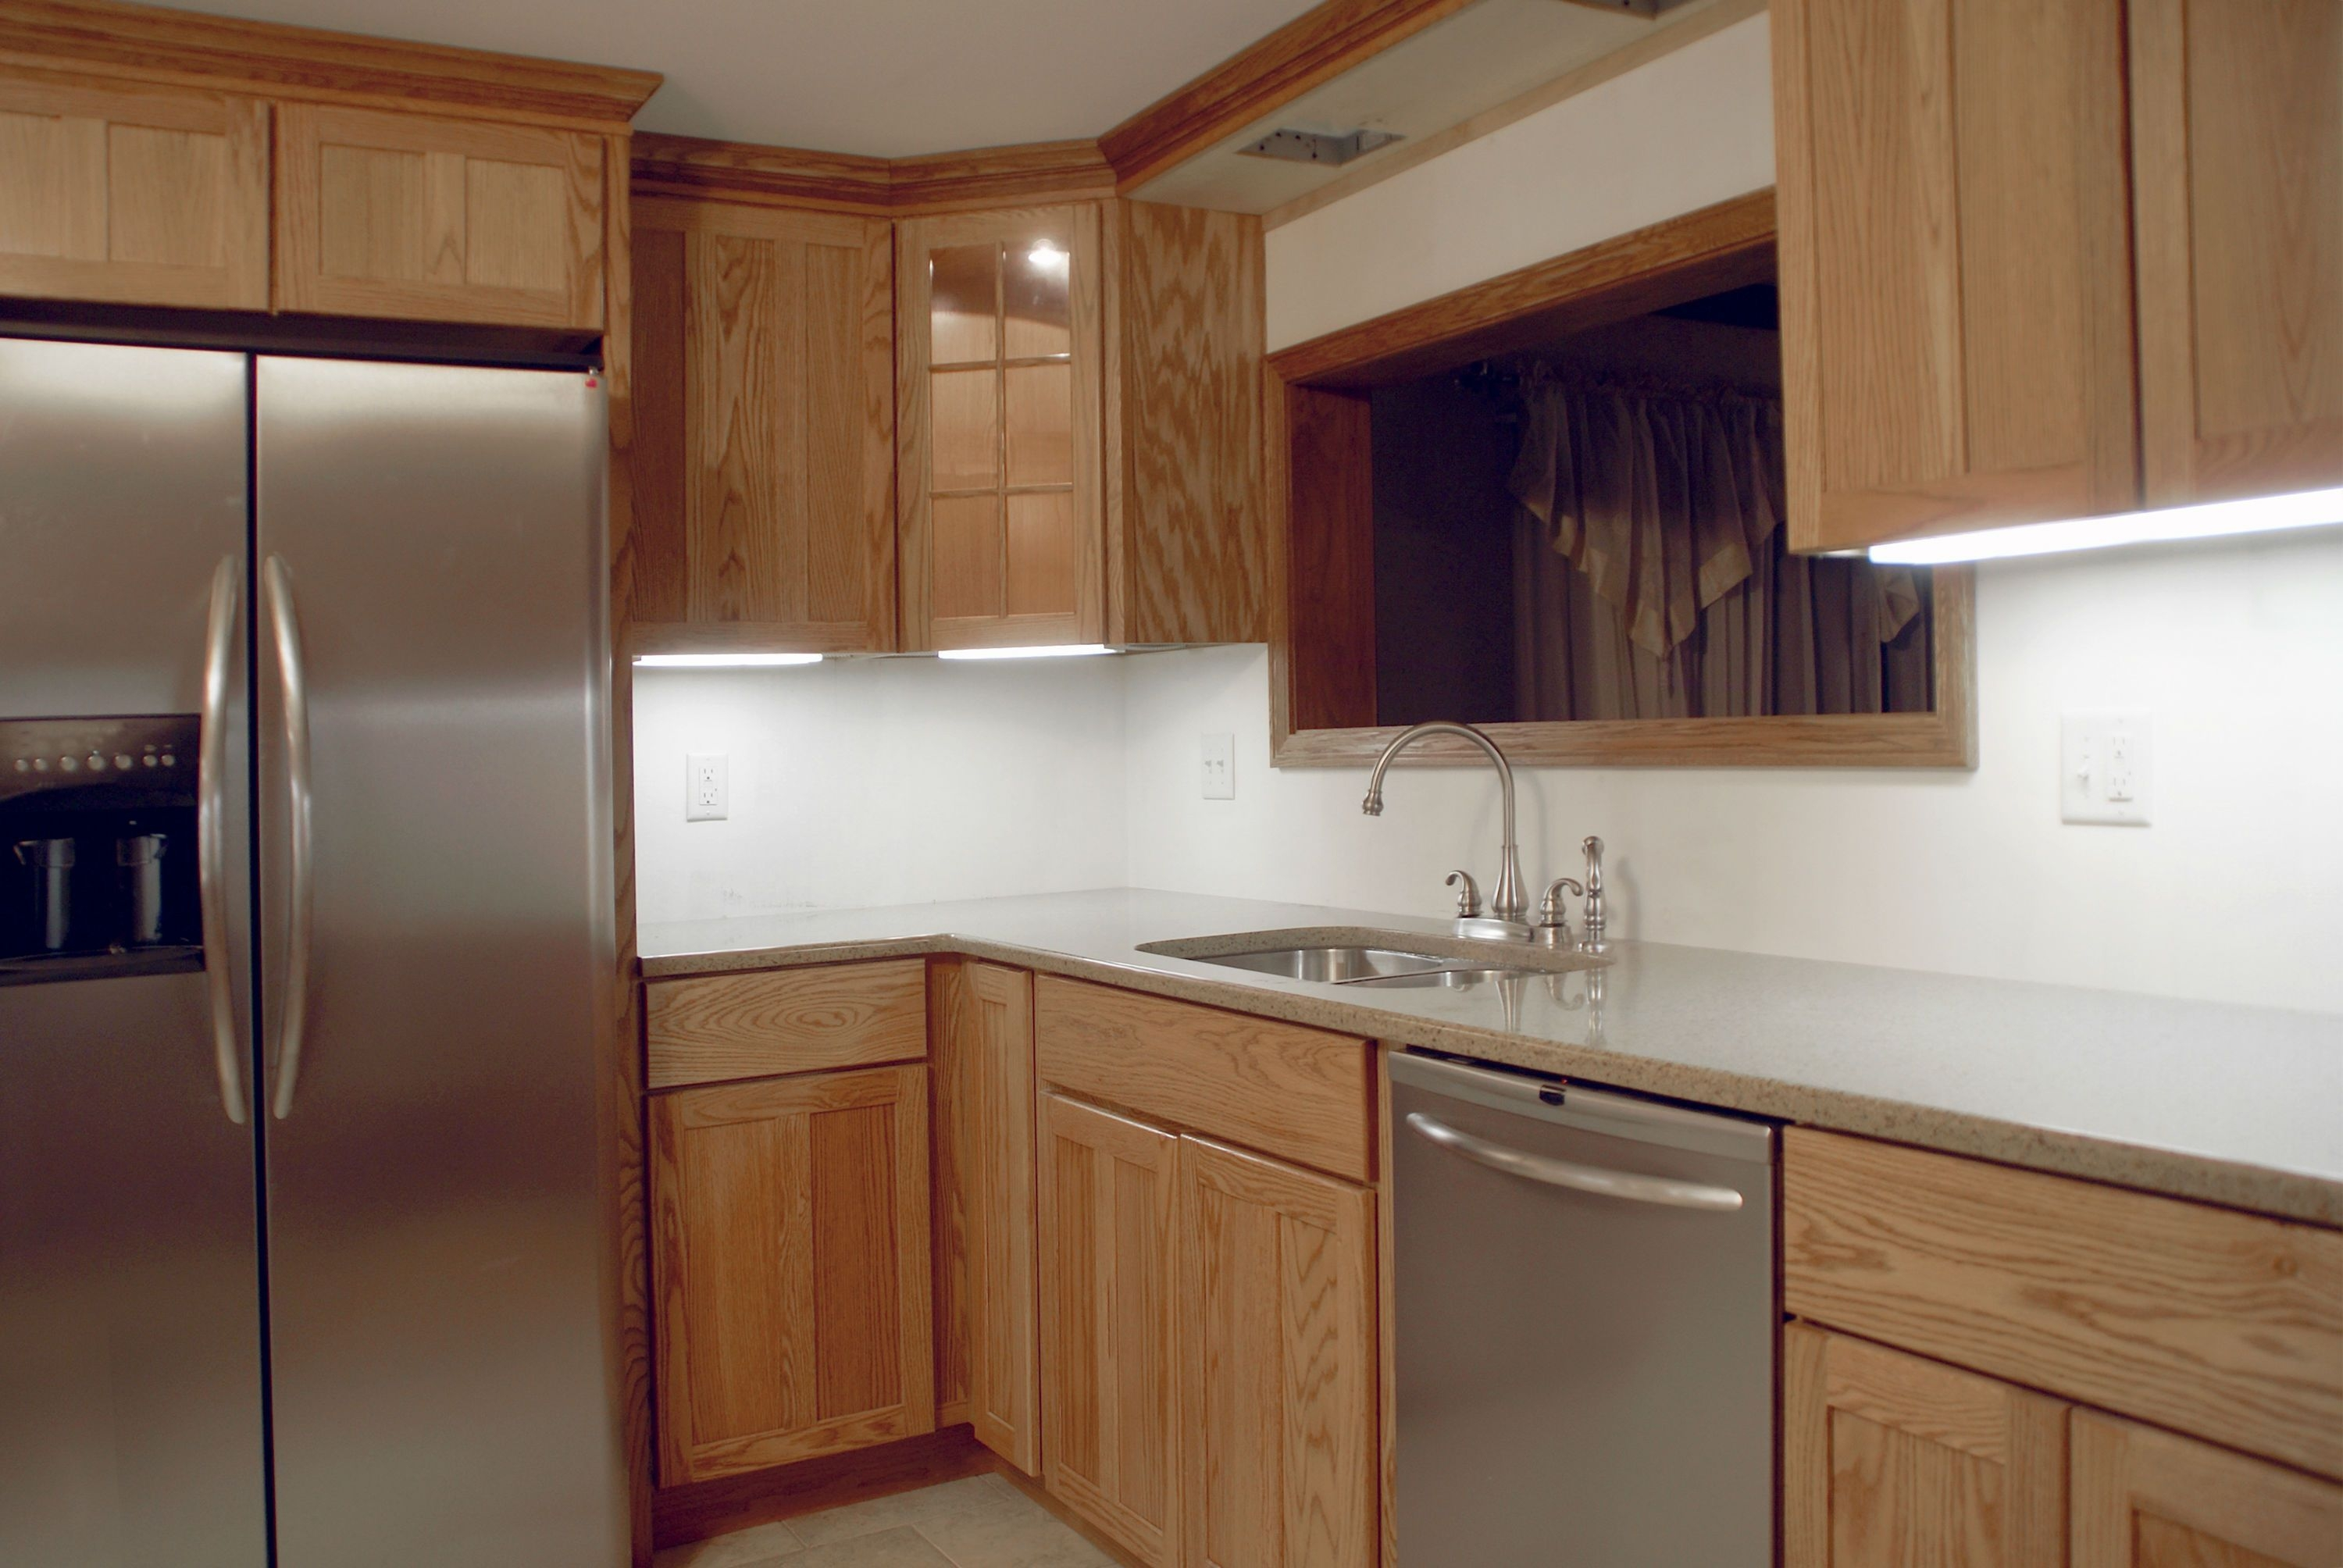 Fitting Kitchen Wall Cabinets